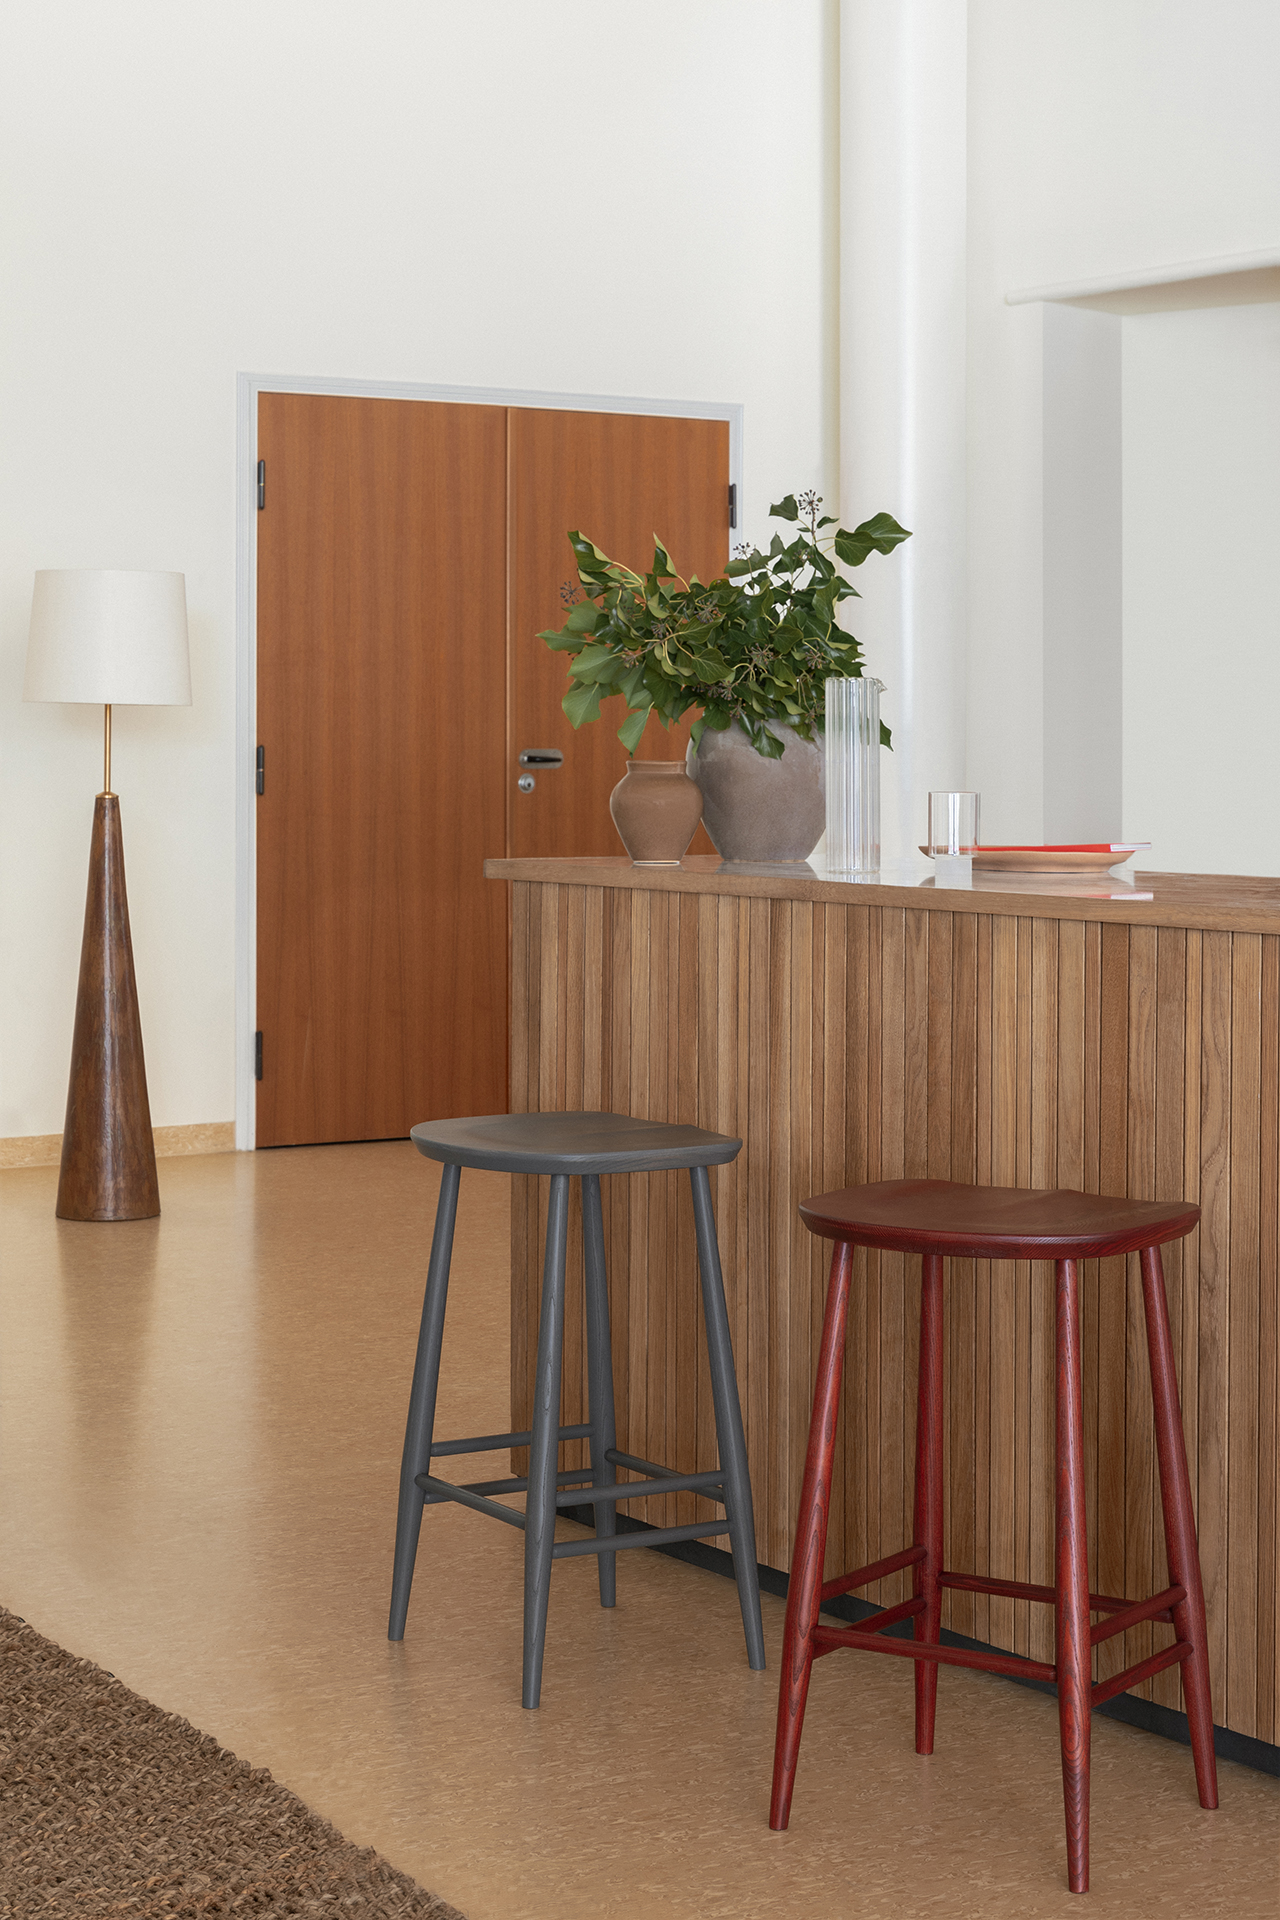 counter with stools